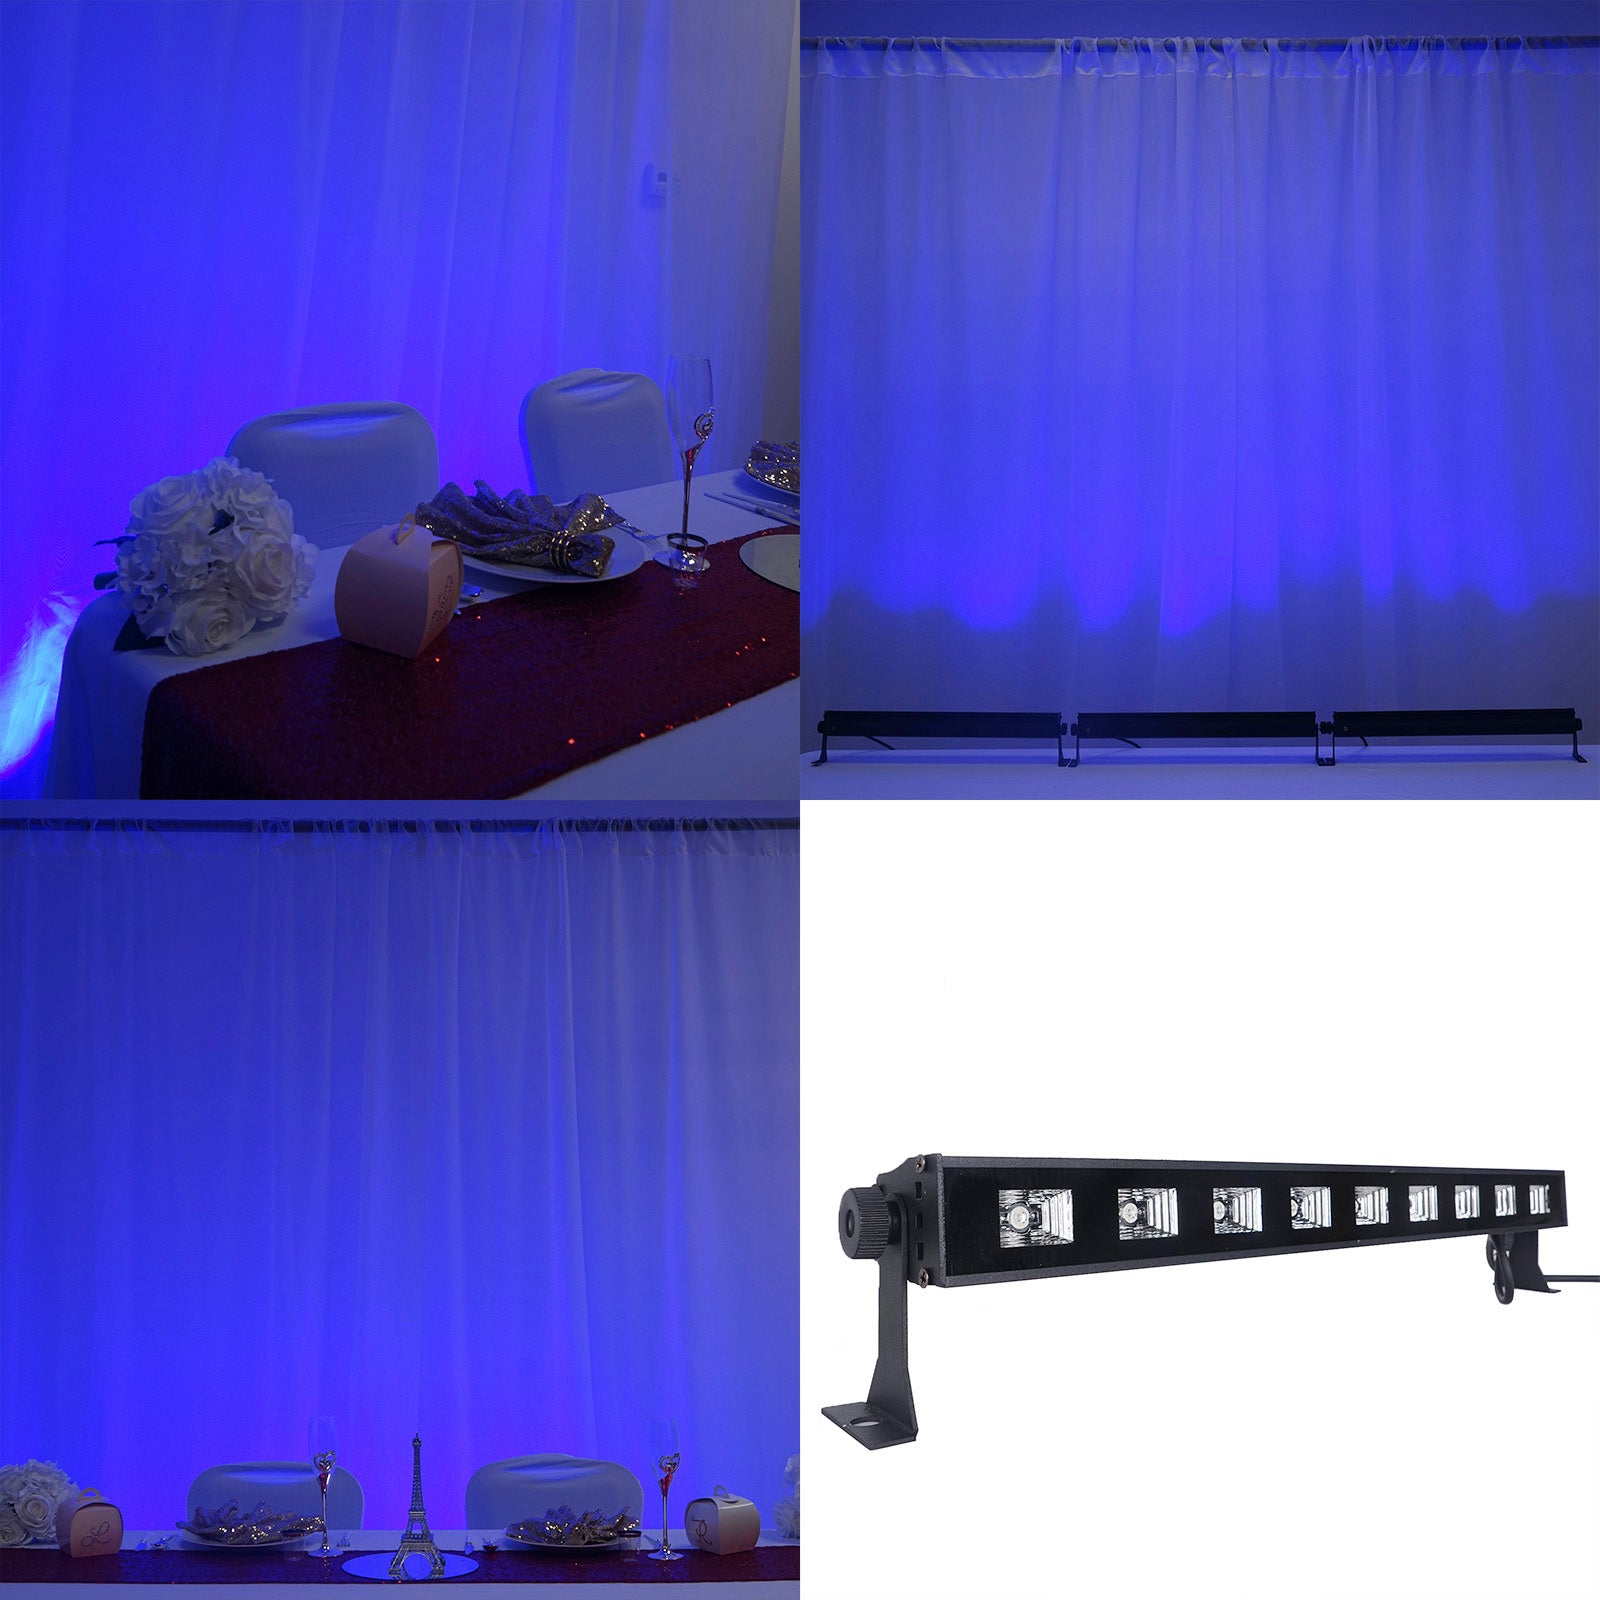 27 Watt Blue Super Bright 9 Led Wall Washer Backdrop Lighting